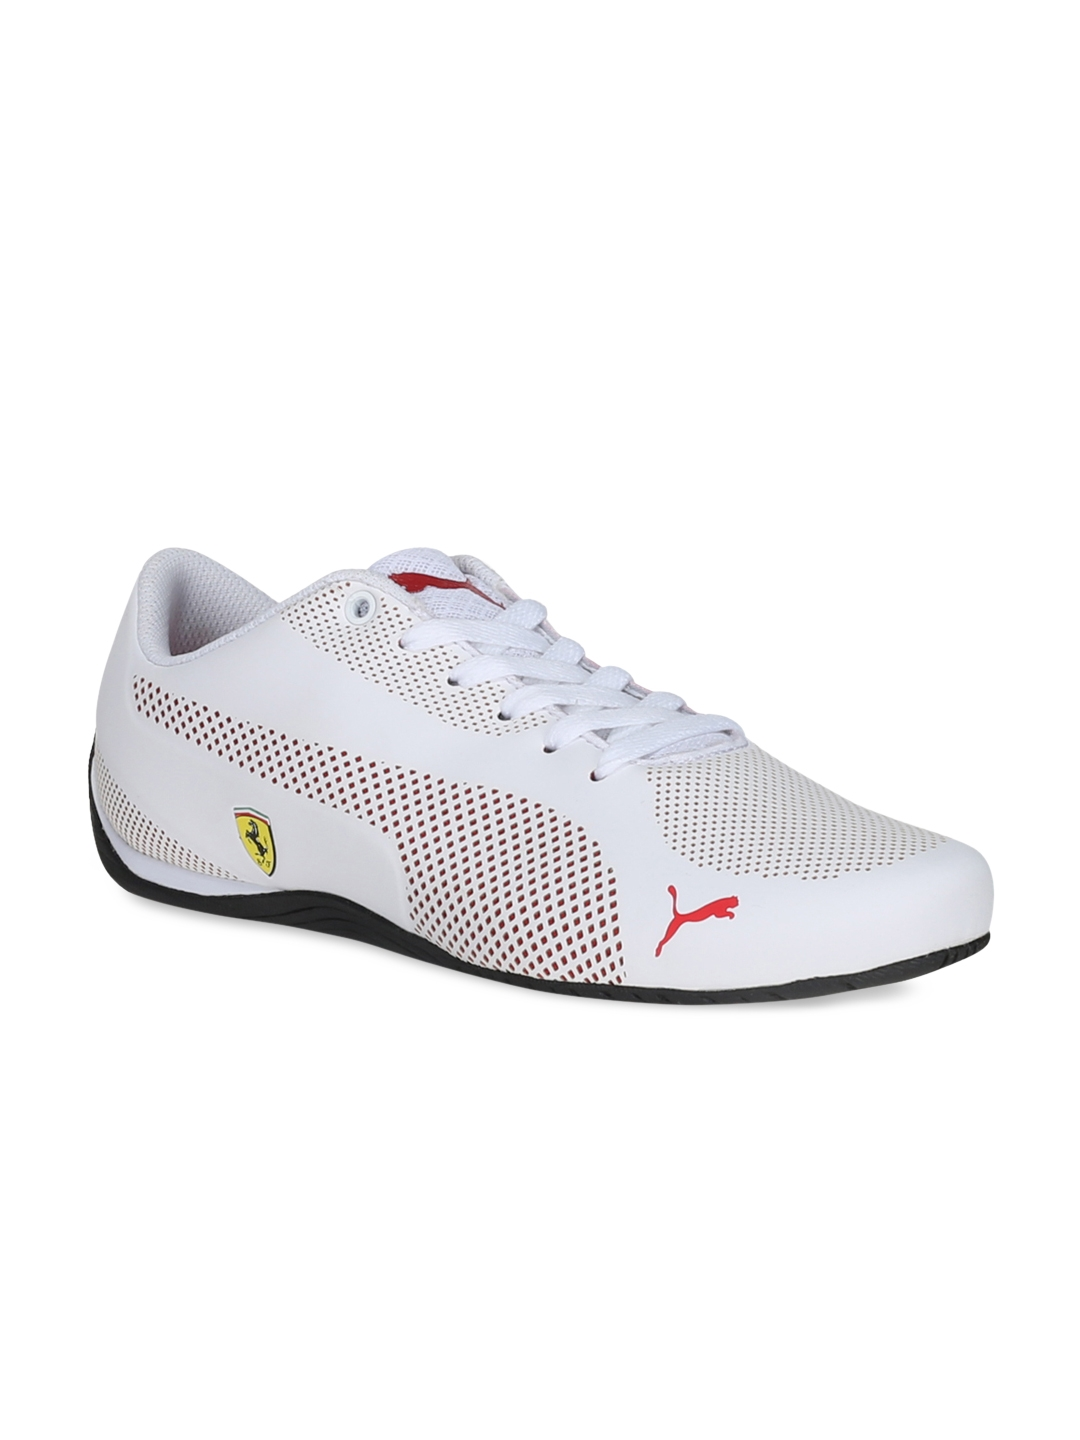 fcdaa6b952313d Buy PUMA Unisex White SF Drift Cat 5 Ultra Sneakers - Casual Shoes ...